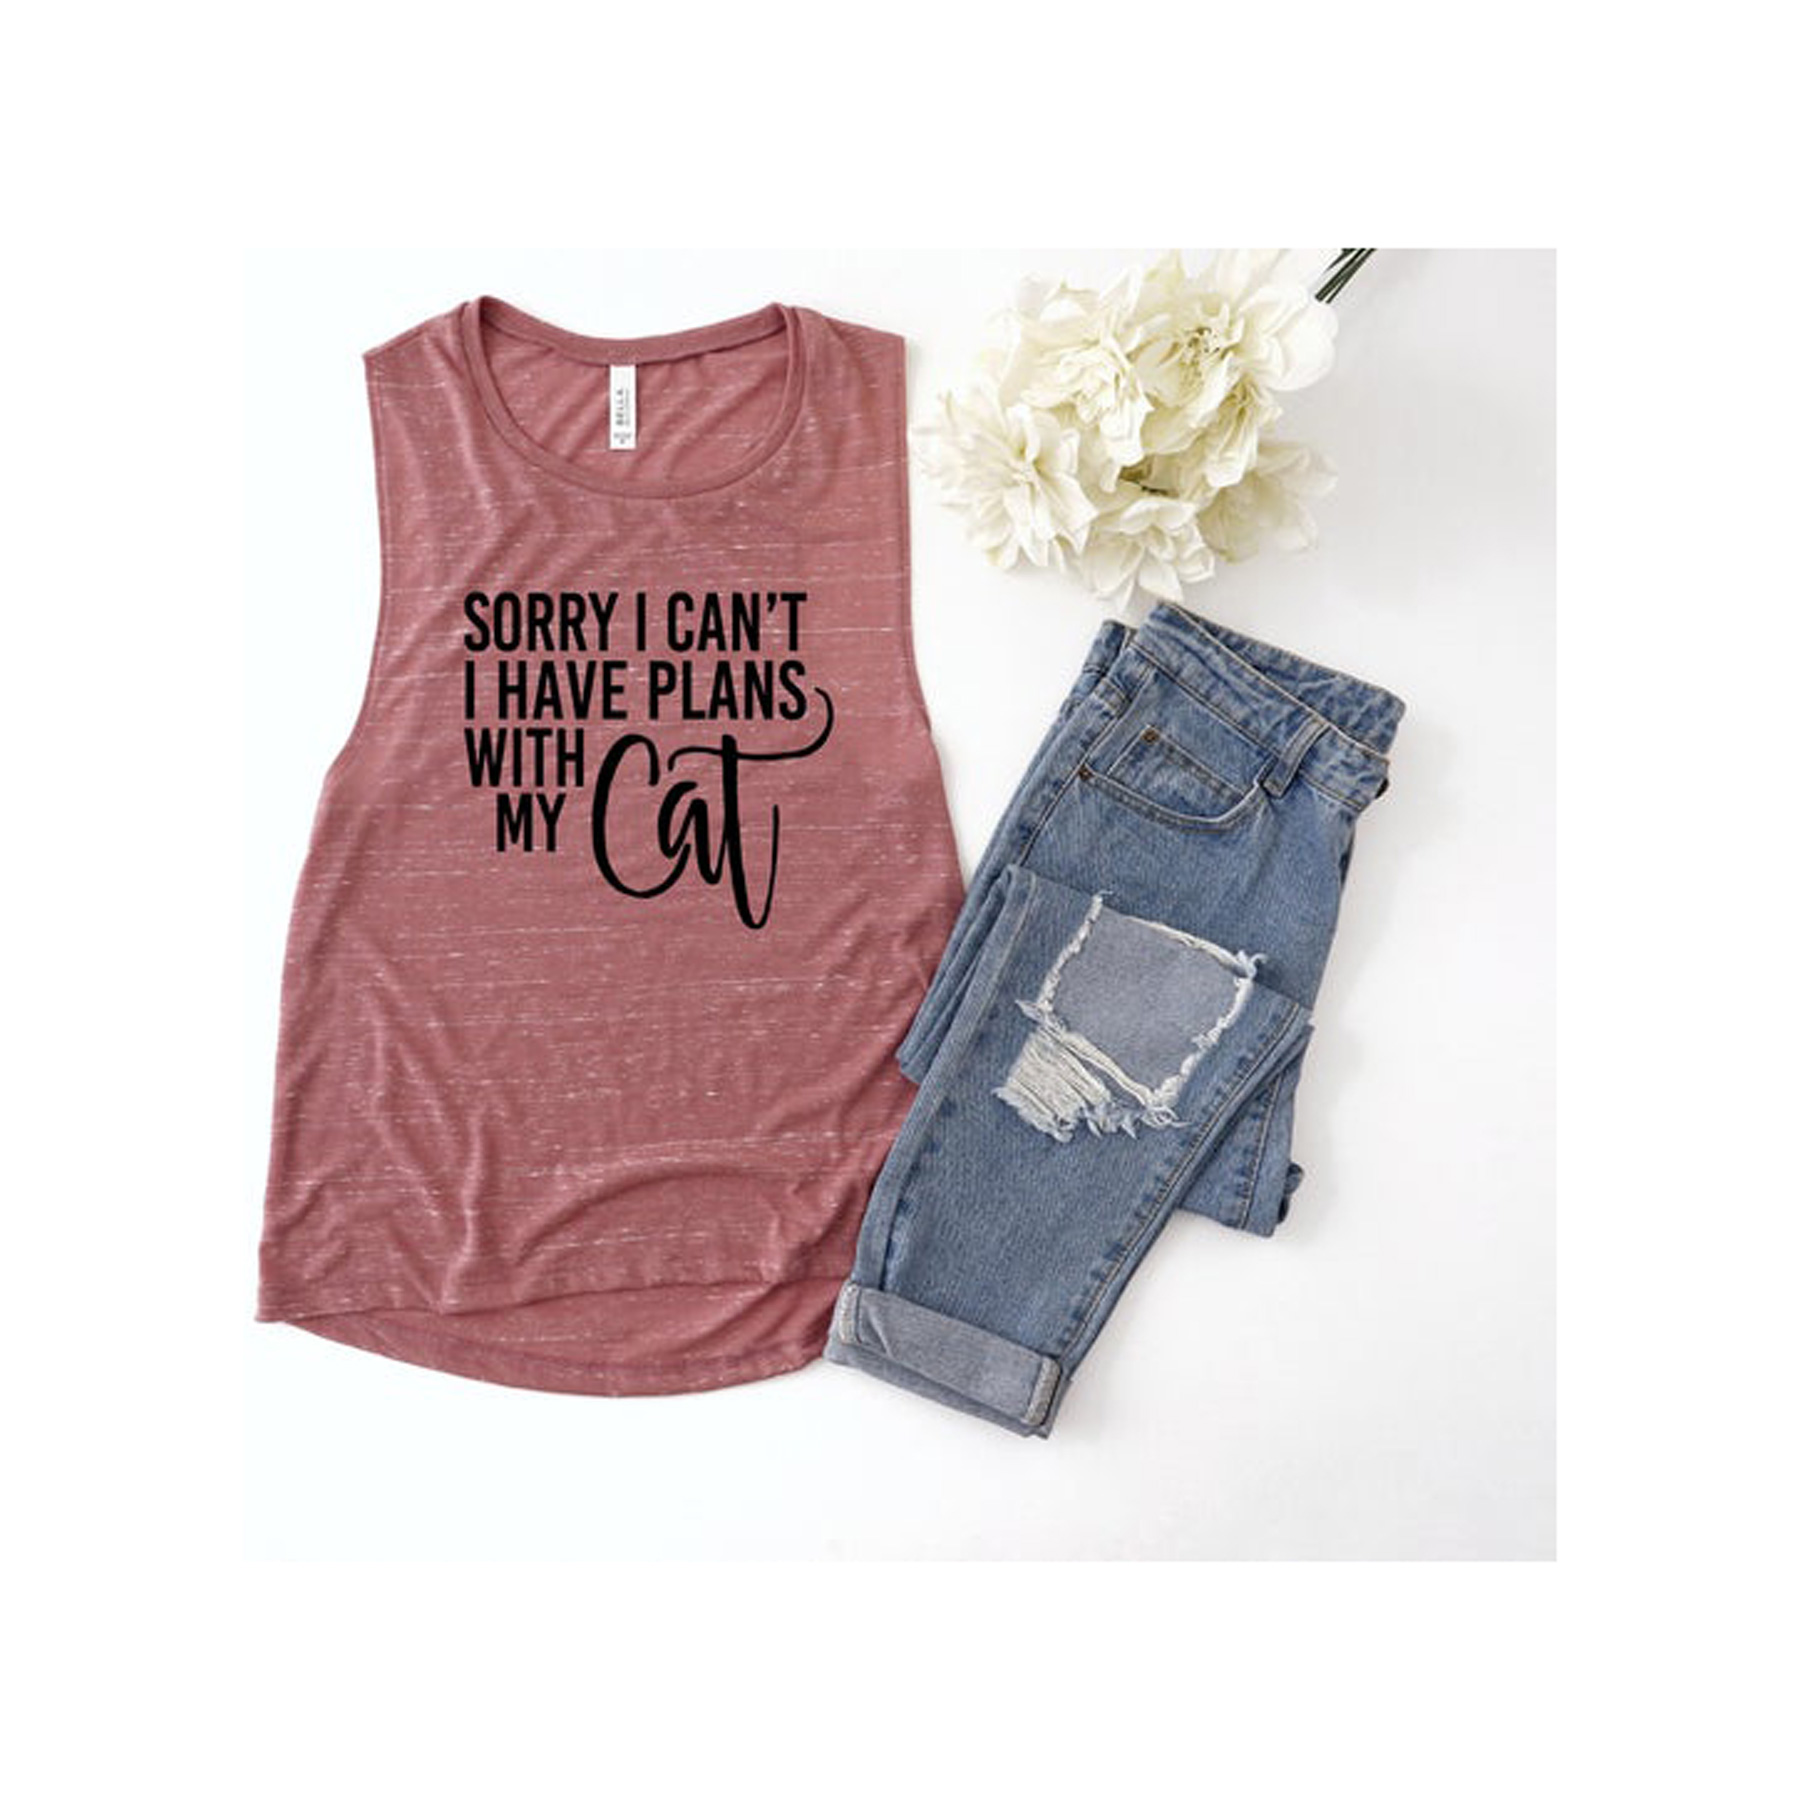 Funny Valentine's Day Gifts: Sorry I Can't I Have Plans With My Cat Tank